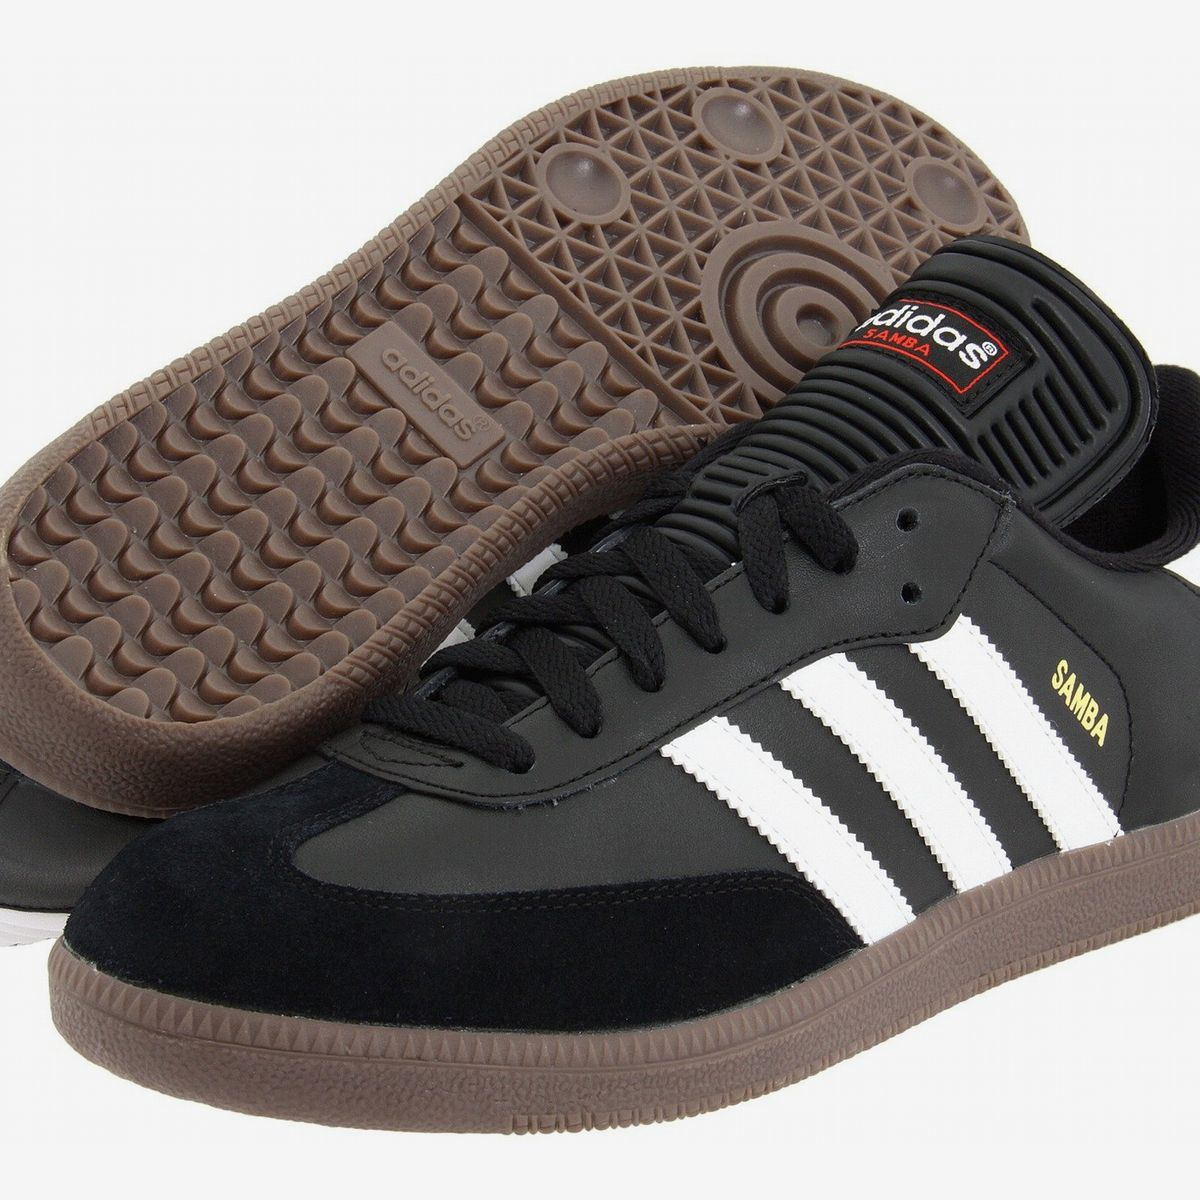 5 Adidas Shoes for Men 2019   The Strategist